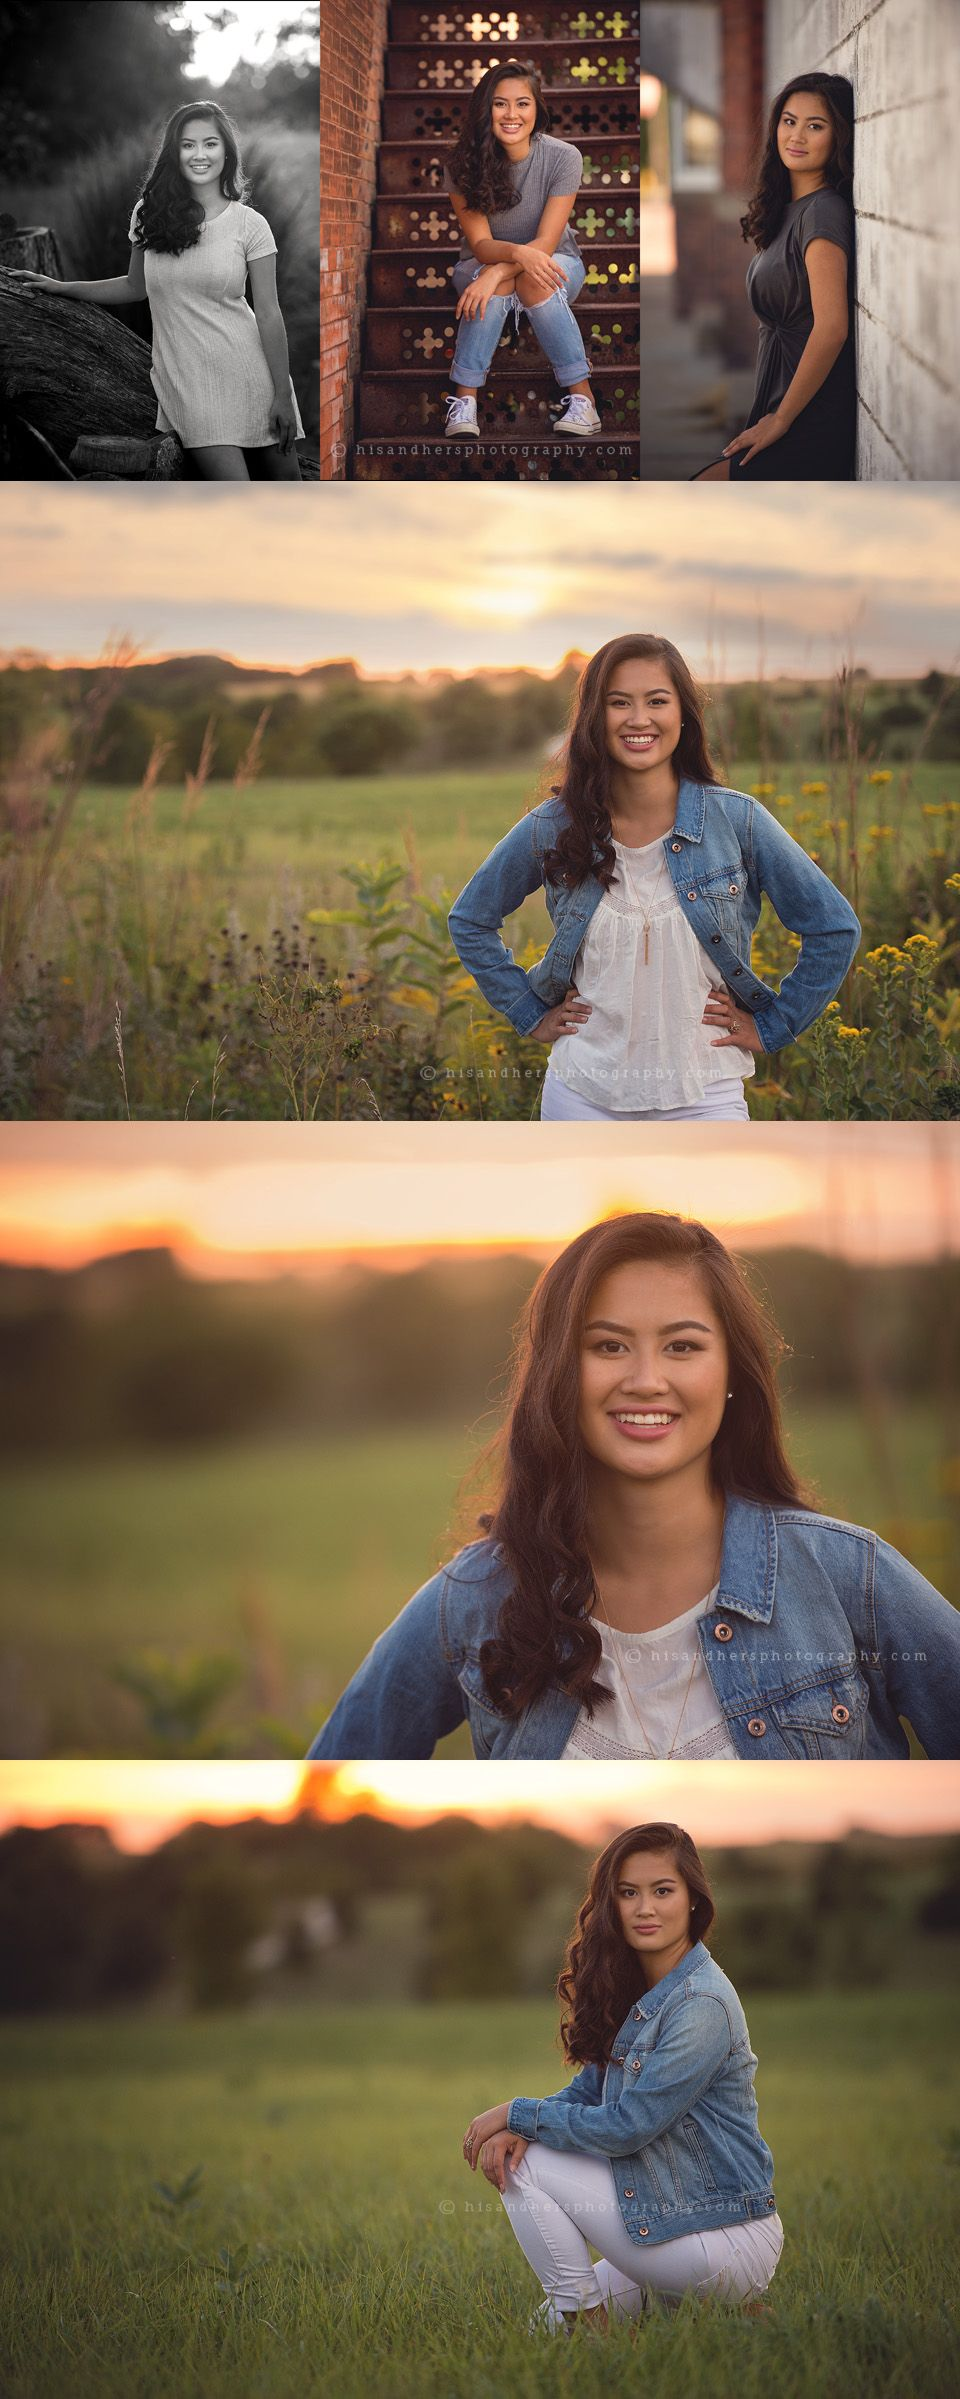 iowa senior portrait photographer, iowa senior pictures photographer, iowa yearbook pictures photographer, senior graduation pictures iowa, iowa photographer, best senior pictures photographer iowa, best senior portraits iowa